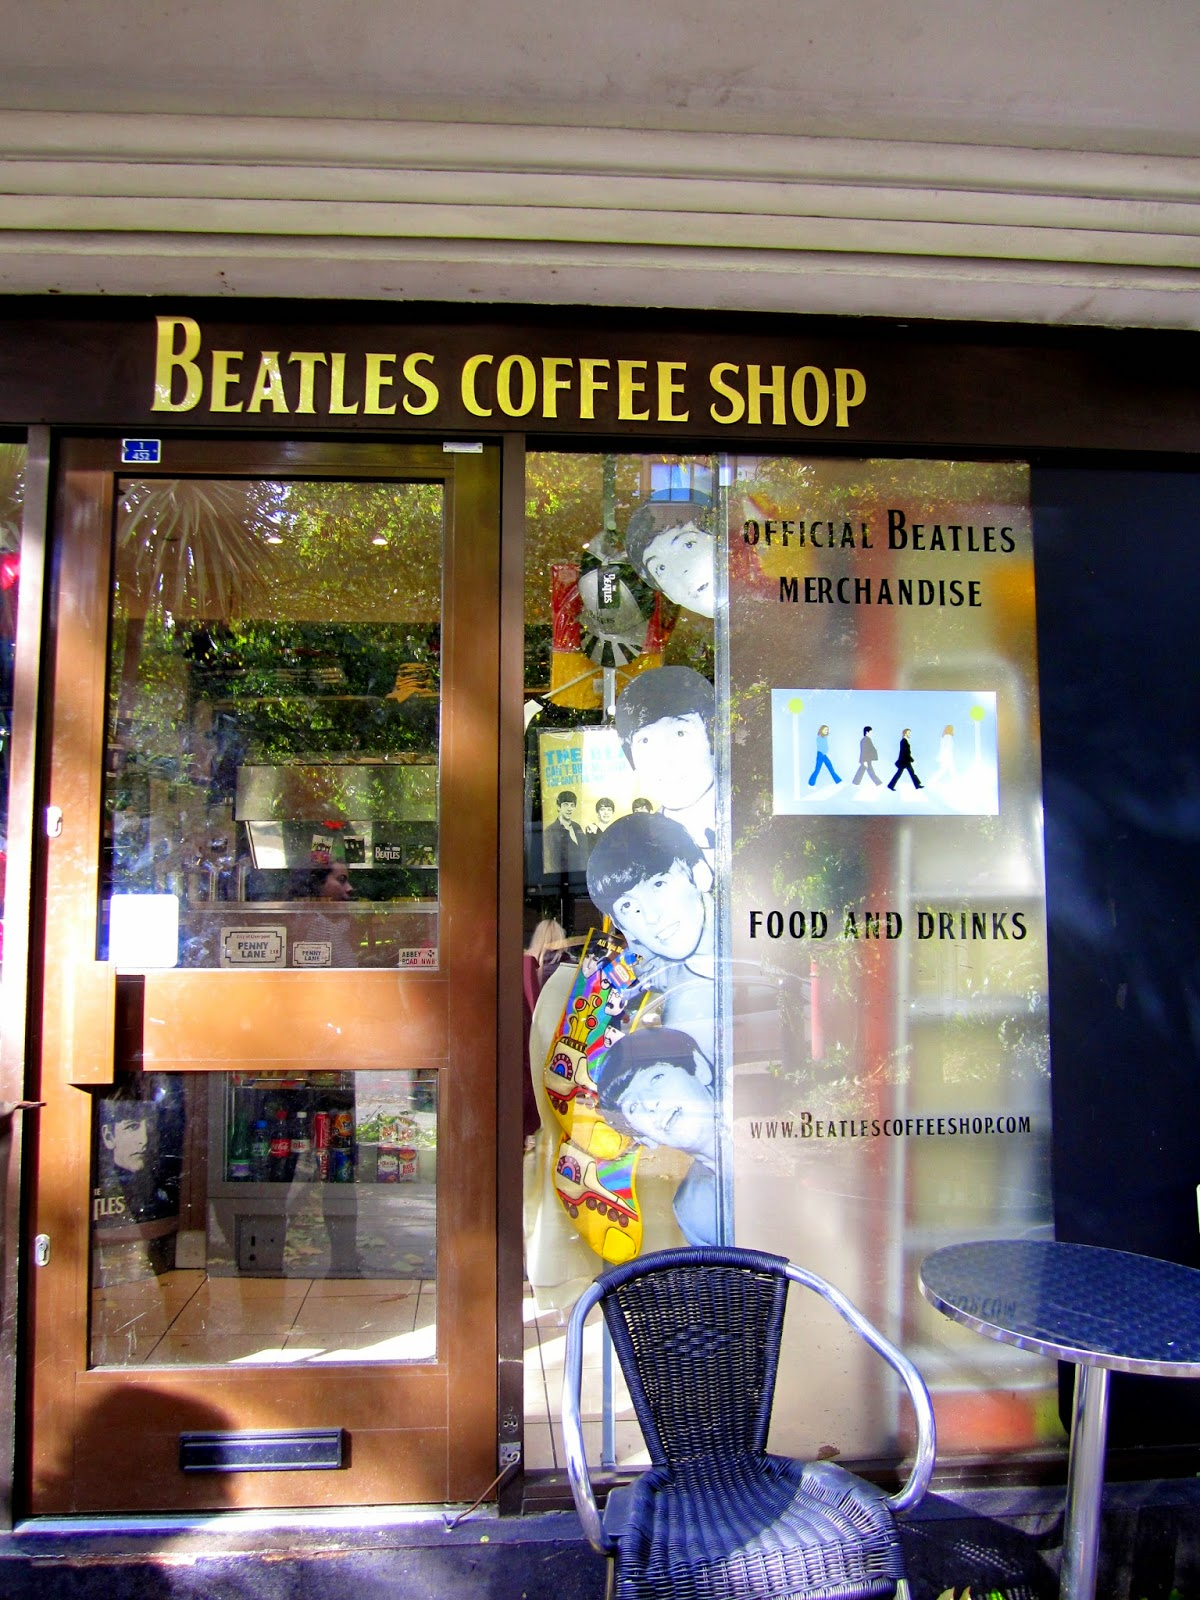 letmecrossover_blog_michele_mattos_london_camden_town_beatles_abbey_road_china_town_travel_traveling